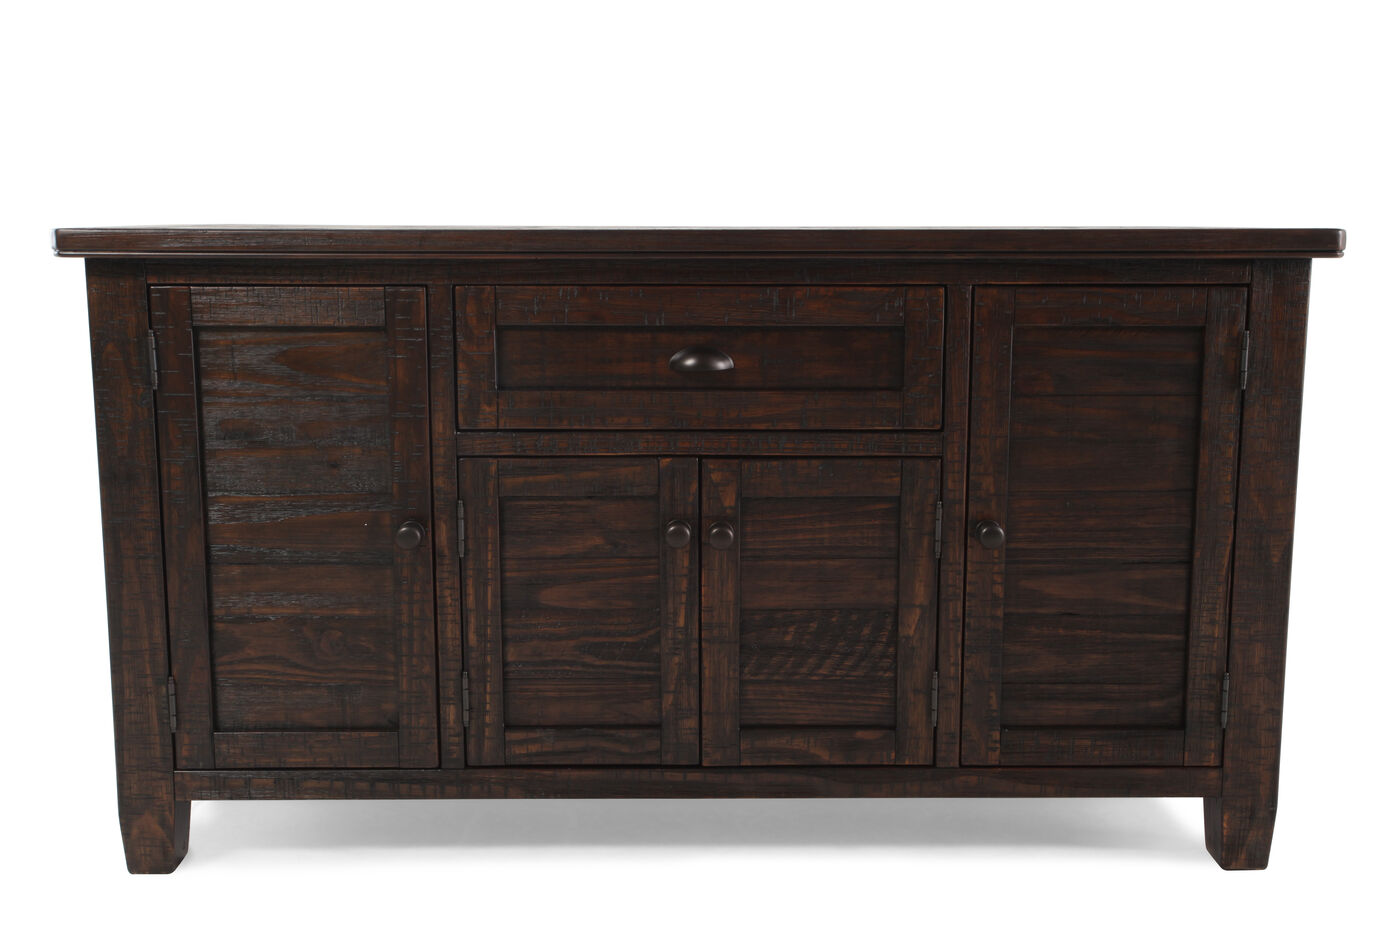 Ashley Trudell Dining Room Server Mathis Brothers Furniture : ASH D6586001 from www.mathisbrothers.com size 1400 x 933 jpeg 113kB